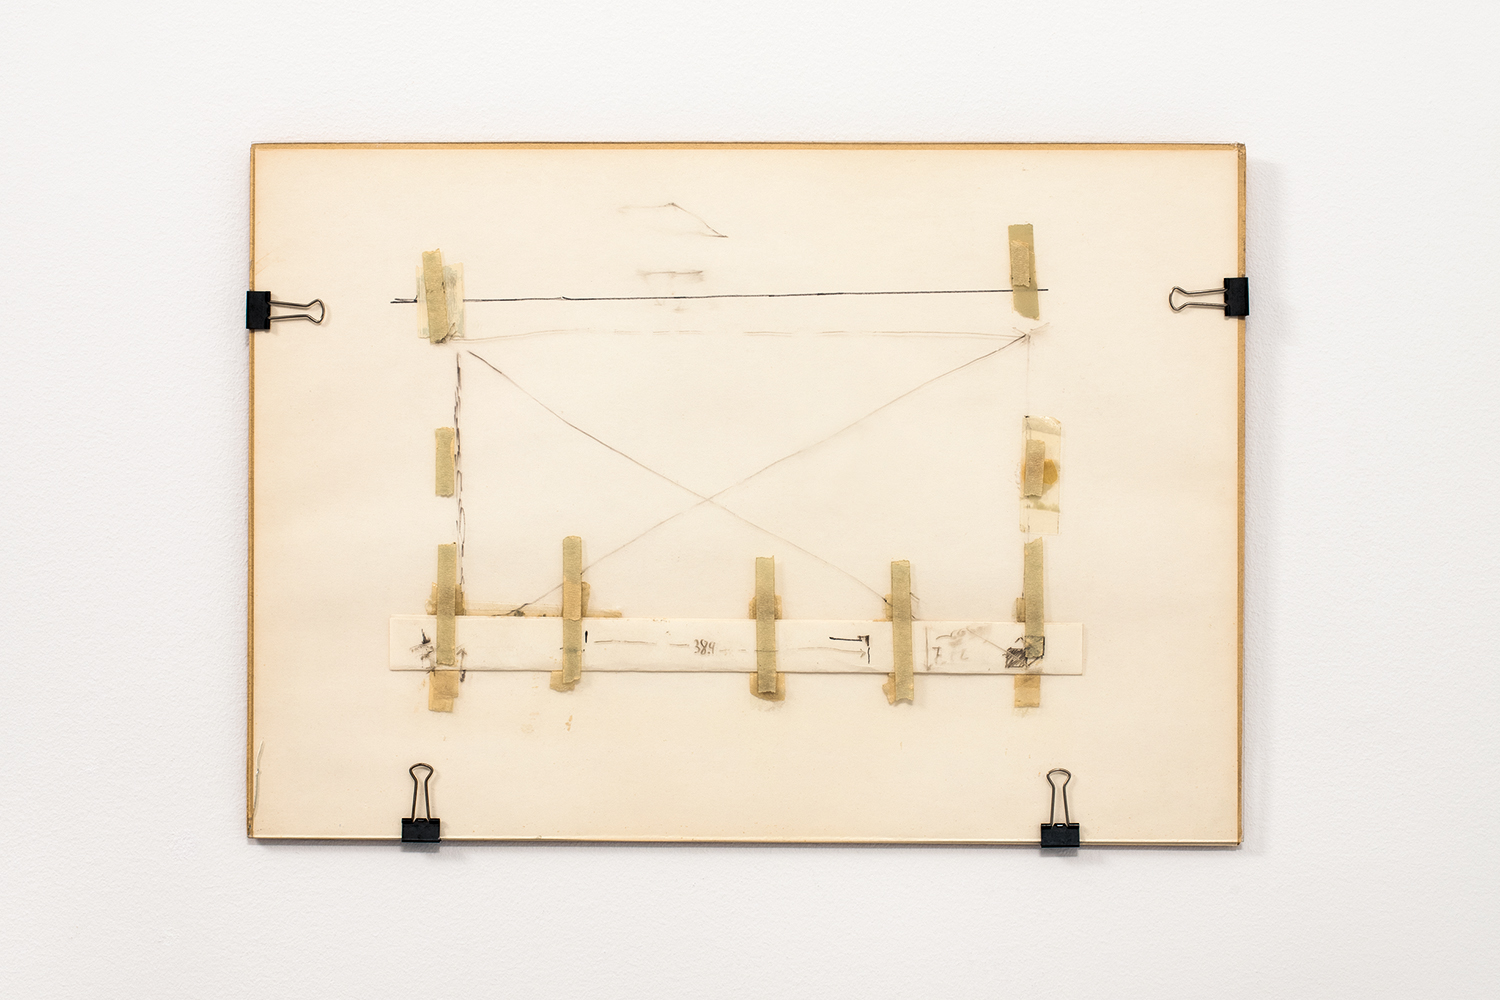 Nahum Tevet, Untitled #1, 1972. Cardboard, paper, binder clips, masking tape, transparent tape, and marker on glass, 13 3/4 x 19 13/16 x 7/16 in. (34.9 x 50.3 x 1.1 cm). Collection of the artist. Photo by Polite Photographic, courtesy of the Hunter College Art Galleries and the artist.